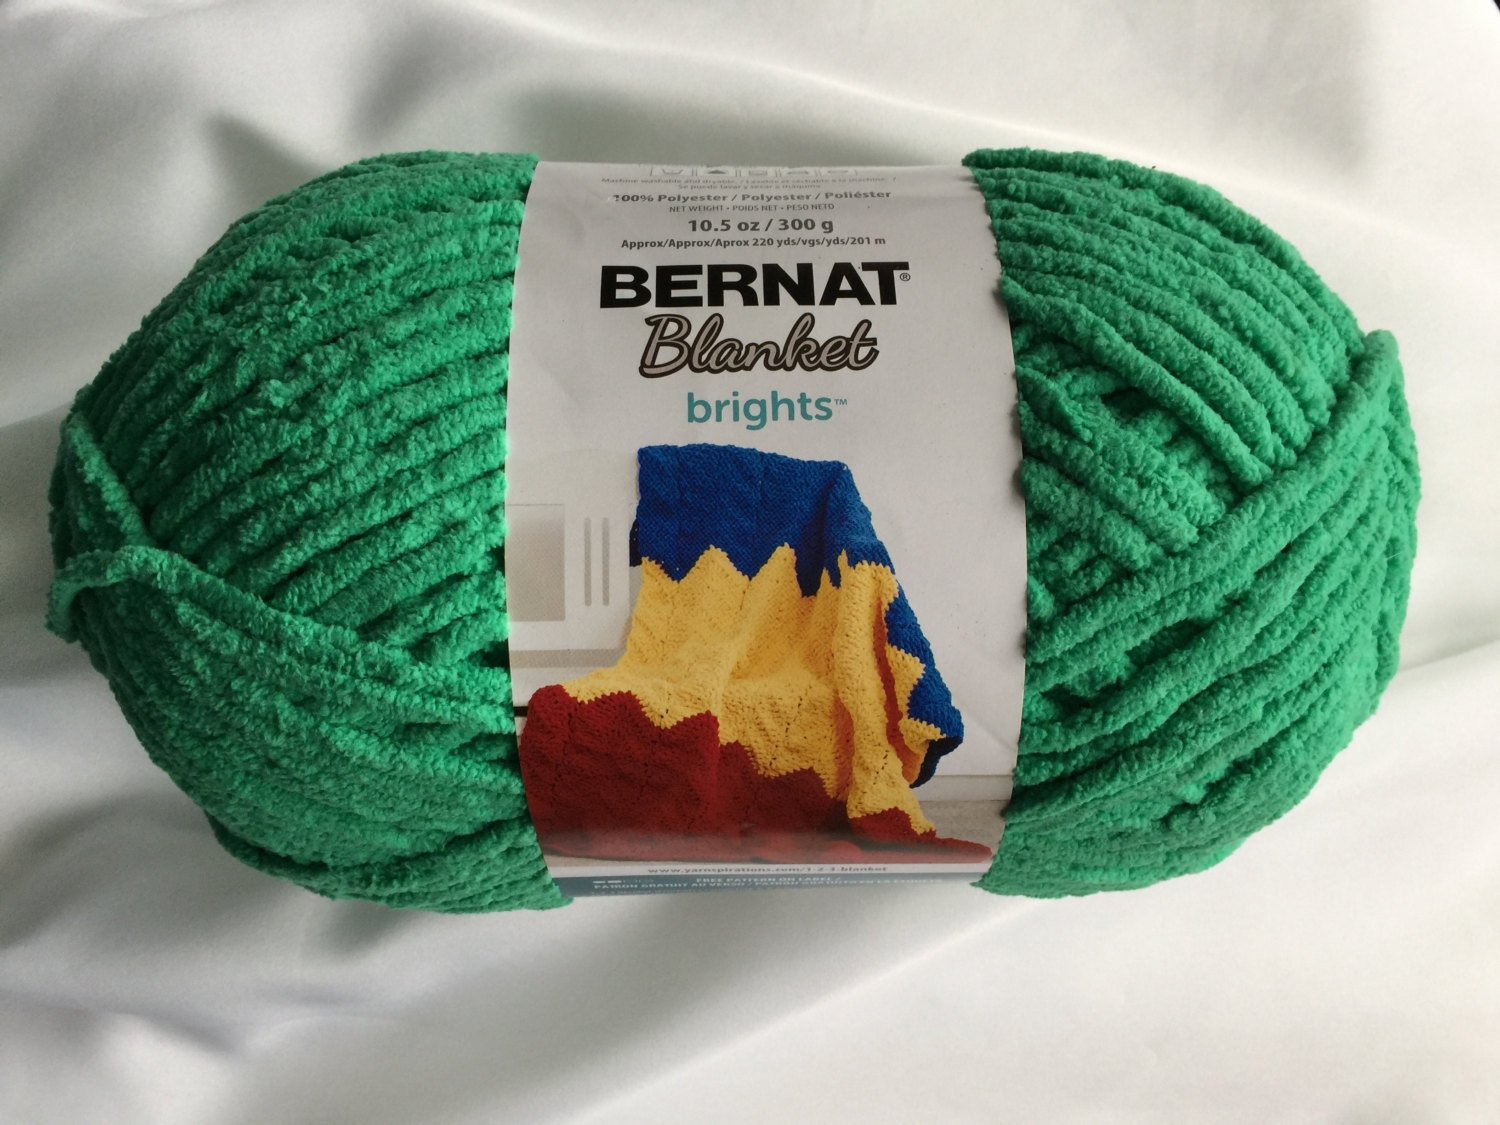 Bernat Blanket Brights Fresh Bernat Blanket Brights Go Go Green Yarn Big 10 5 Oz Of Amazing 42 Pictures Bernat Blanket Brights